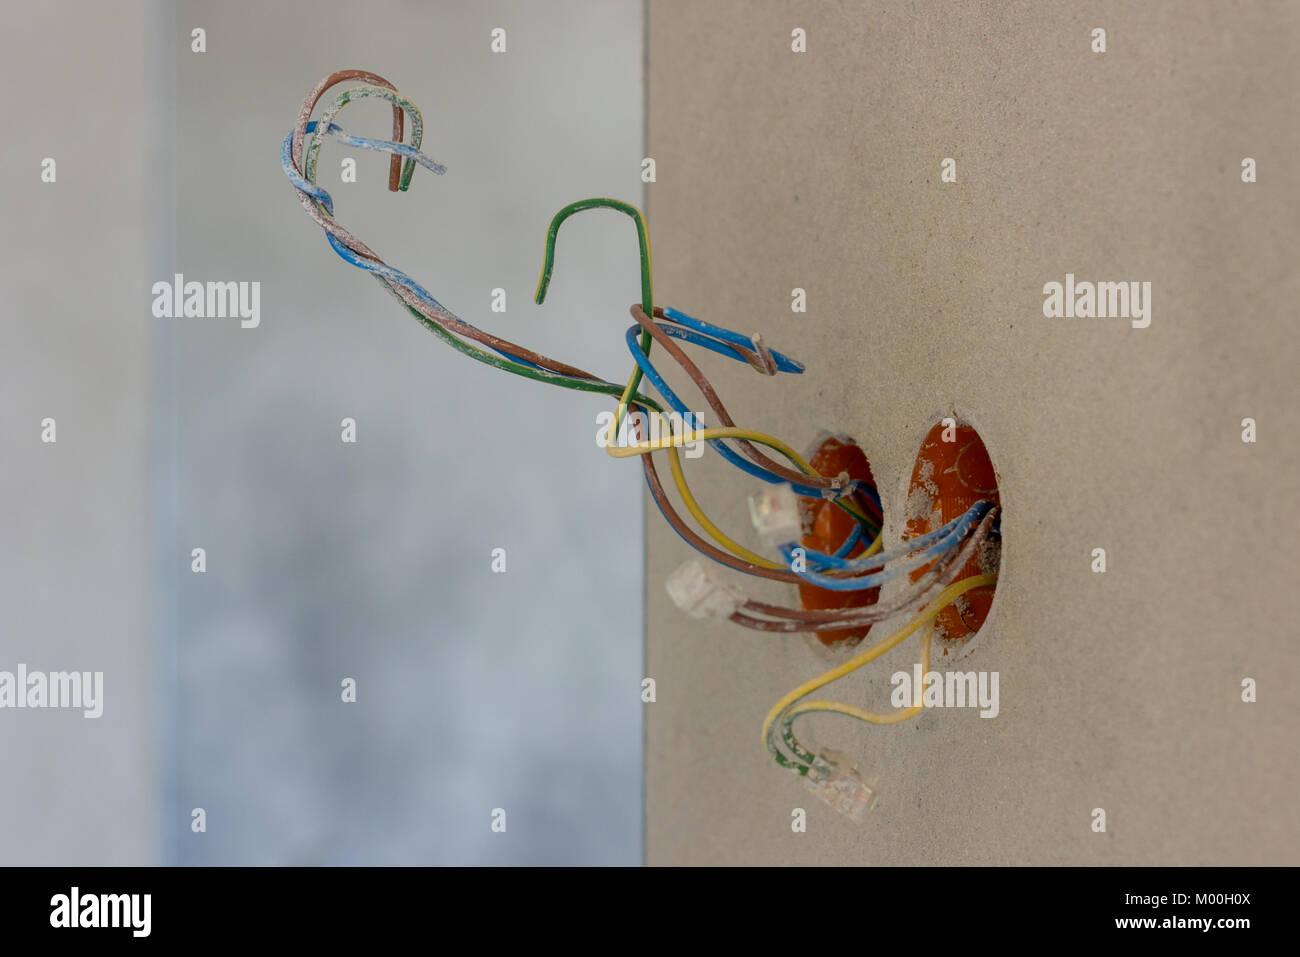 House Electricity Wires In Stock Photos & House Electricity Wires ...